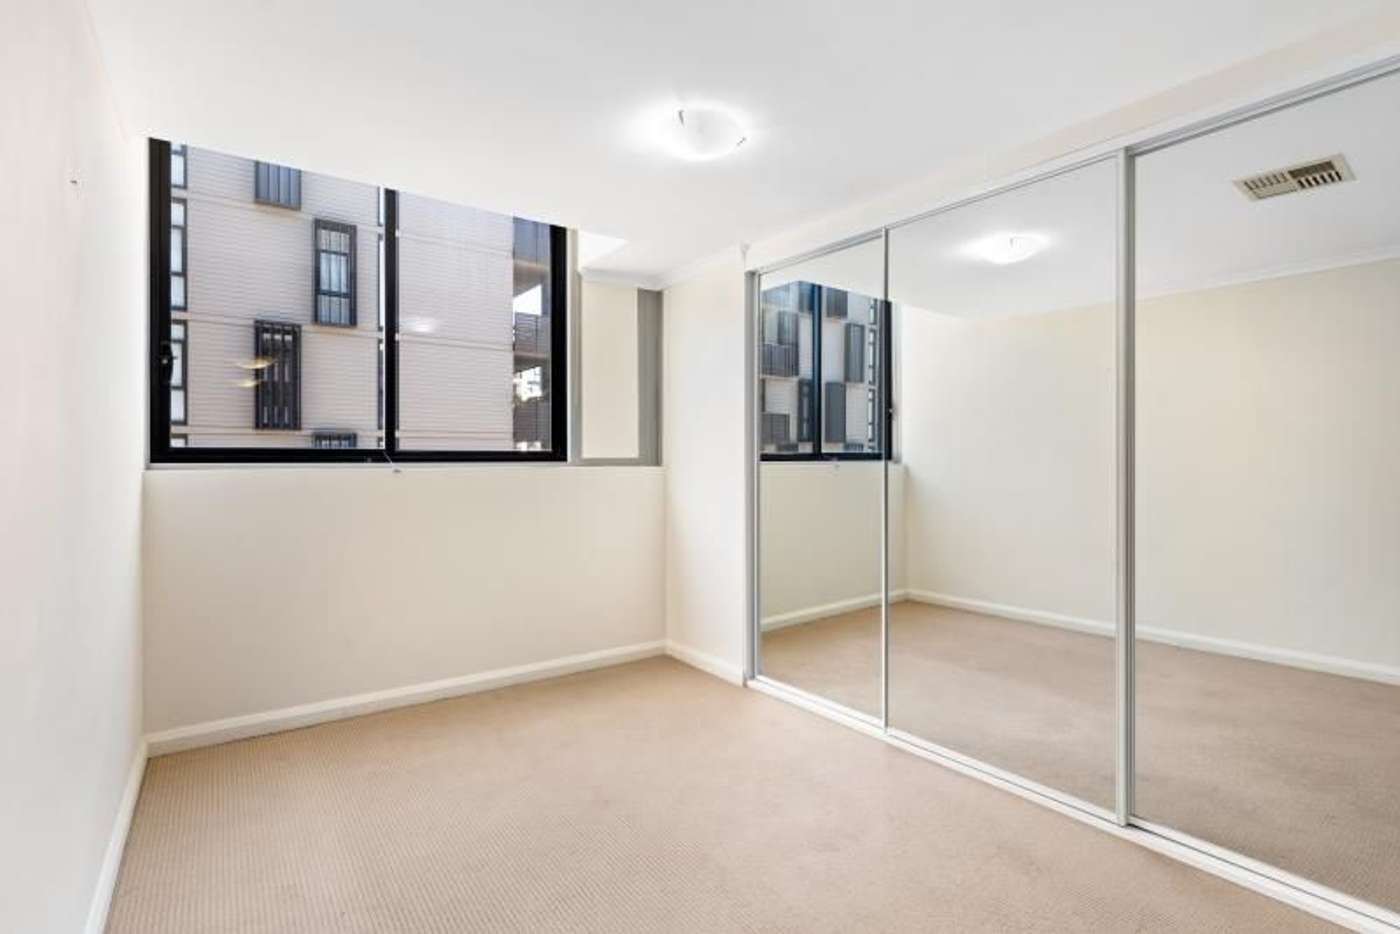 Main view of Homely apartment listing, 115/11A Lachlan Street, Waterloo NSW 2017